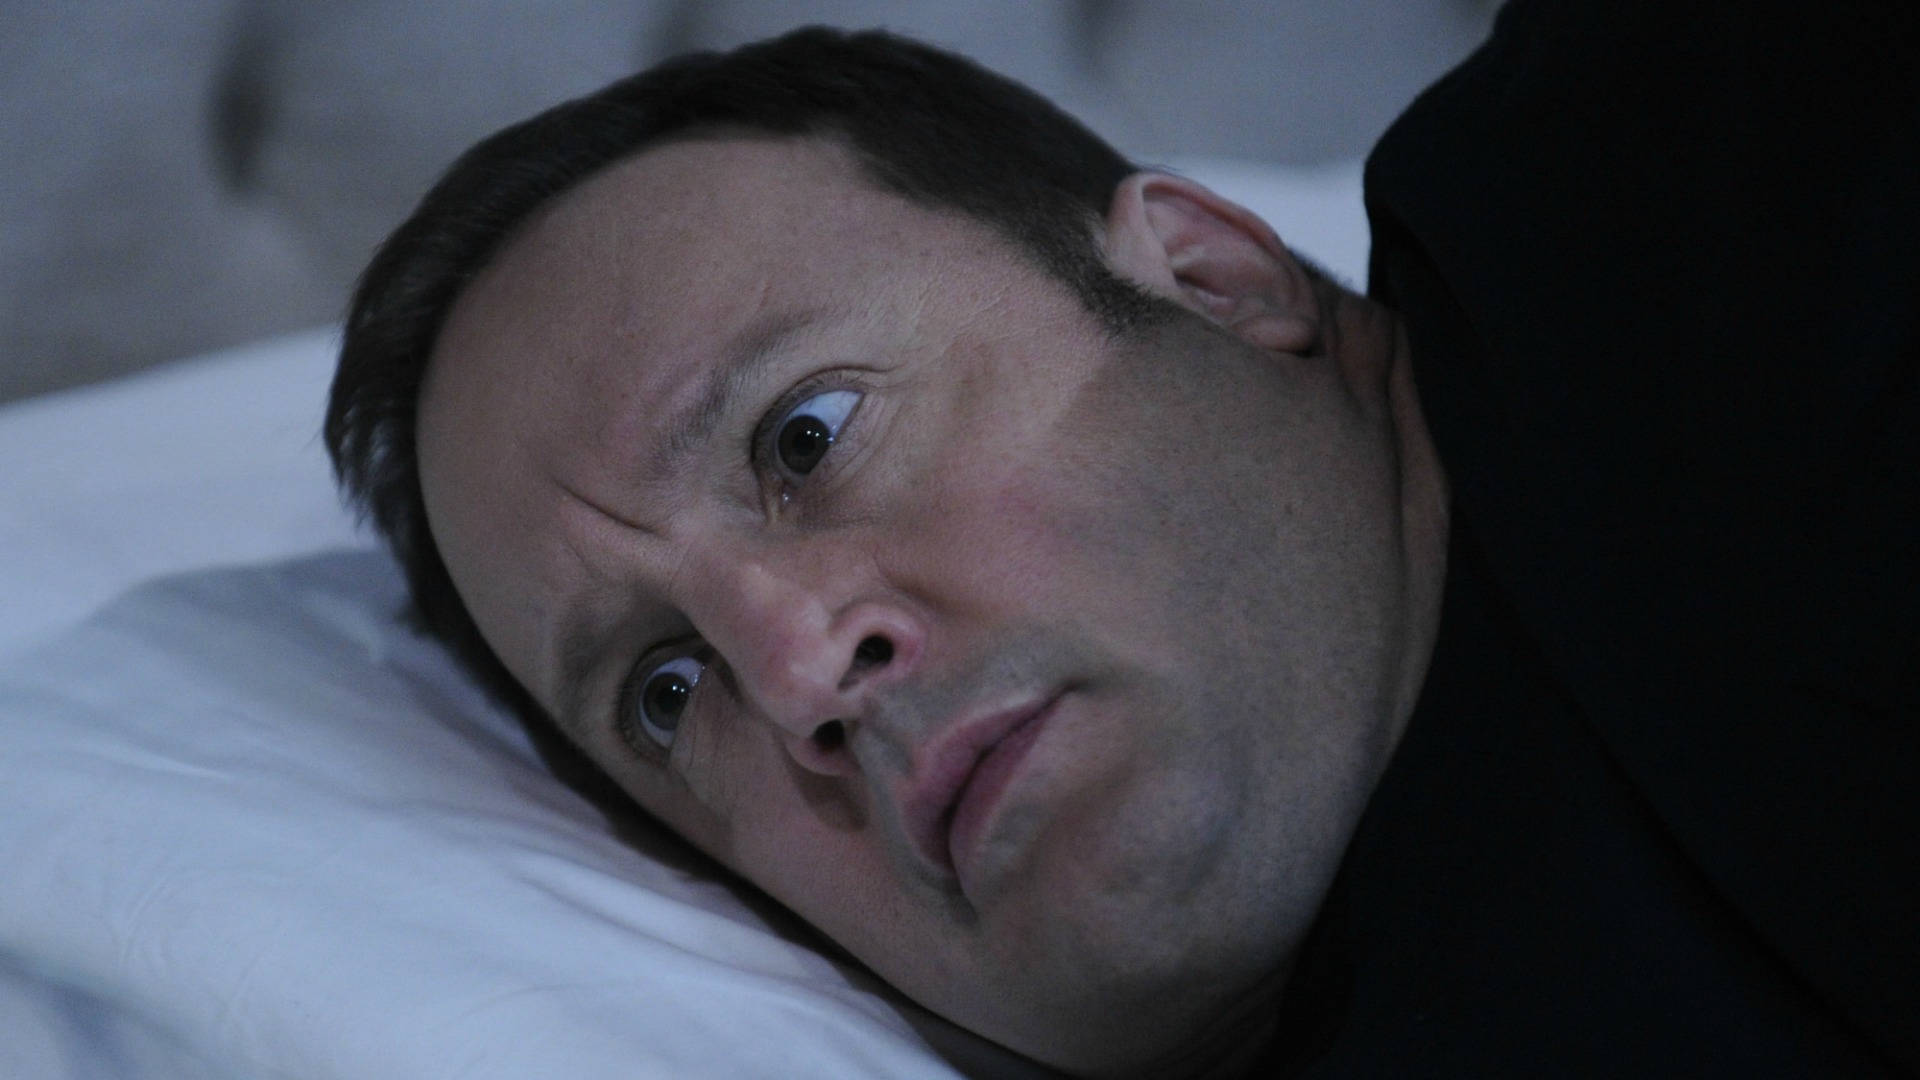 Kevin spends the night wide-awake.